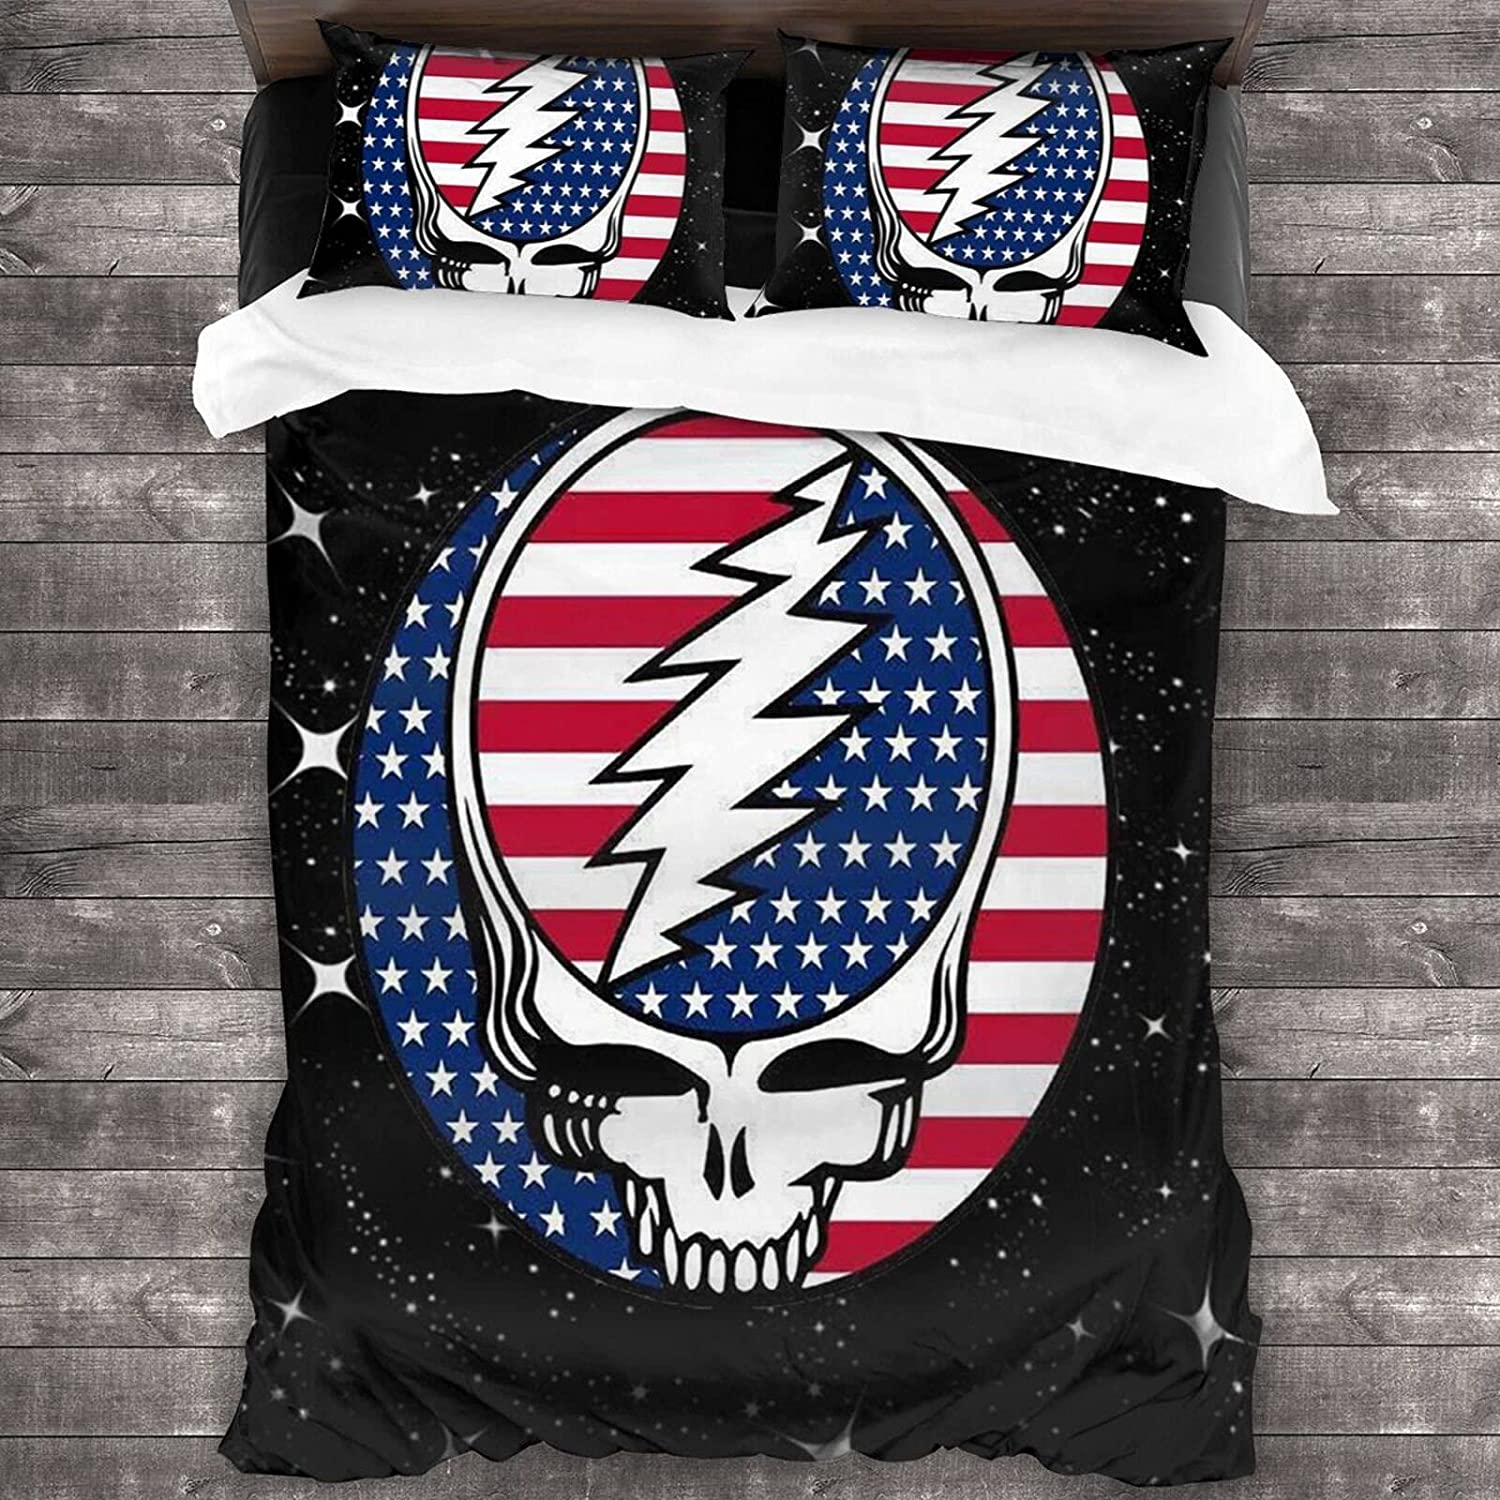 Bedding Sheet Set Steal Your Max NEW 75% OFF American Flag Se Soft Bed 3-Pieces